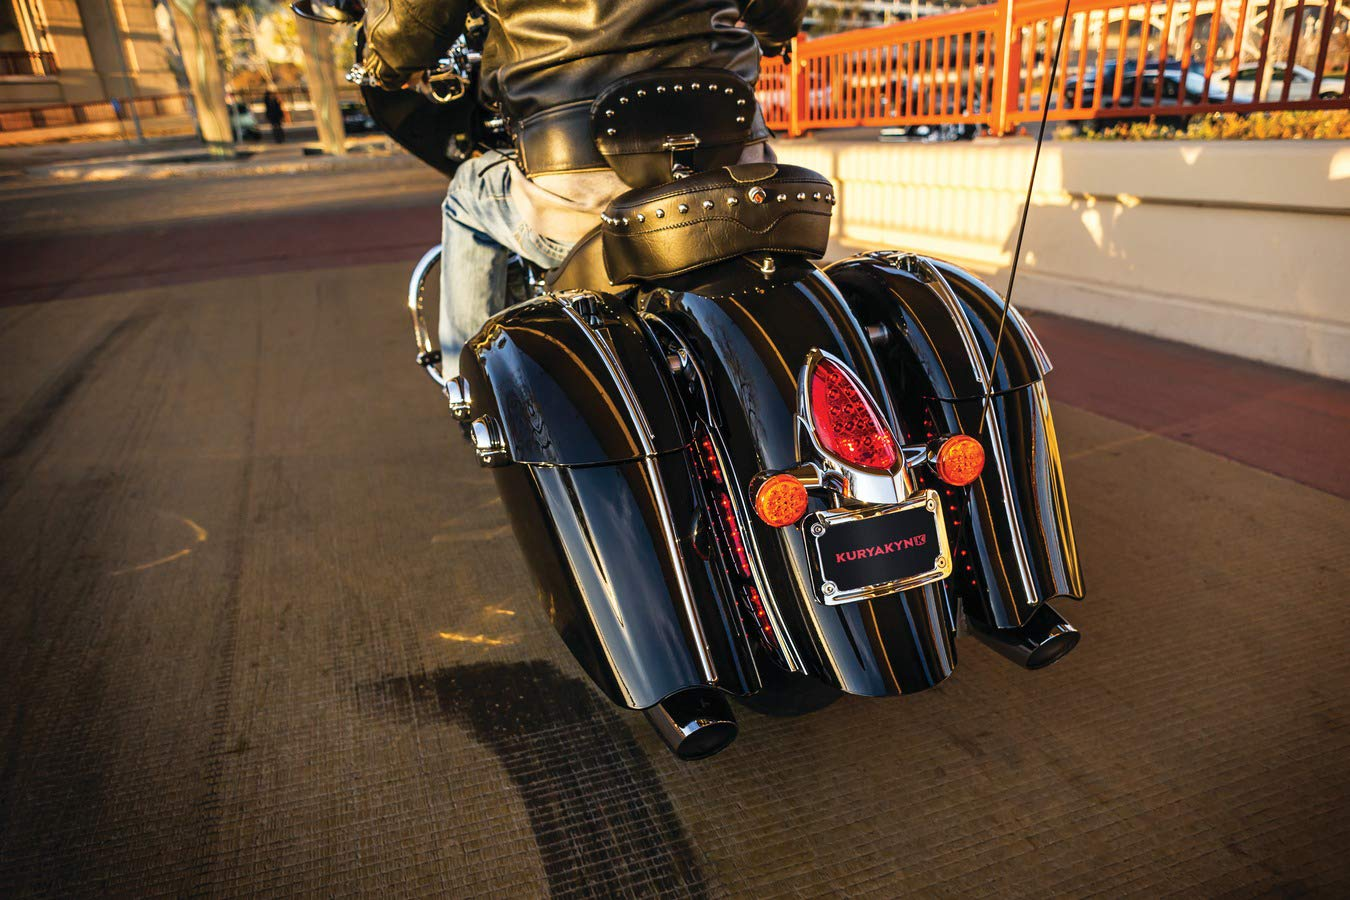 Kuryakyn 5699 Motorcycle Accent Accessory: Curved License Plate Mount Holder and Frame with LED Illumination Lighting for 2014-19 Indian Motorcycles, Chrome by Kuryakyn